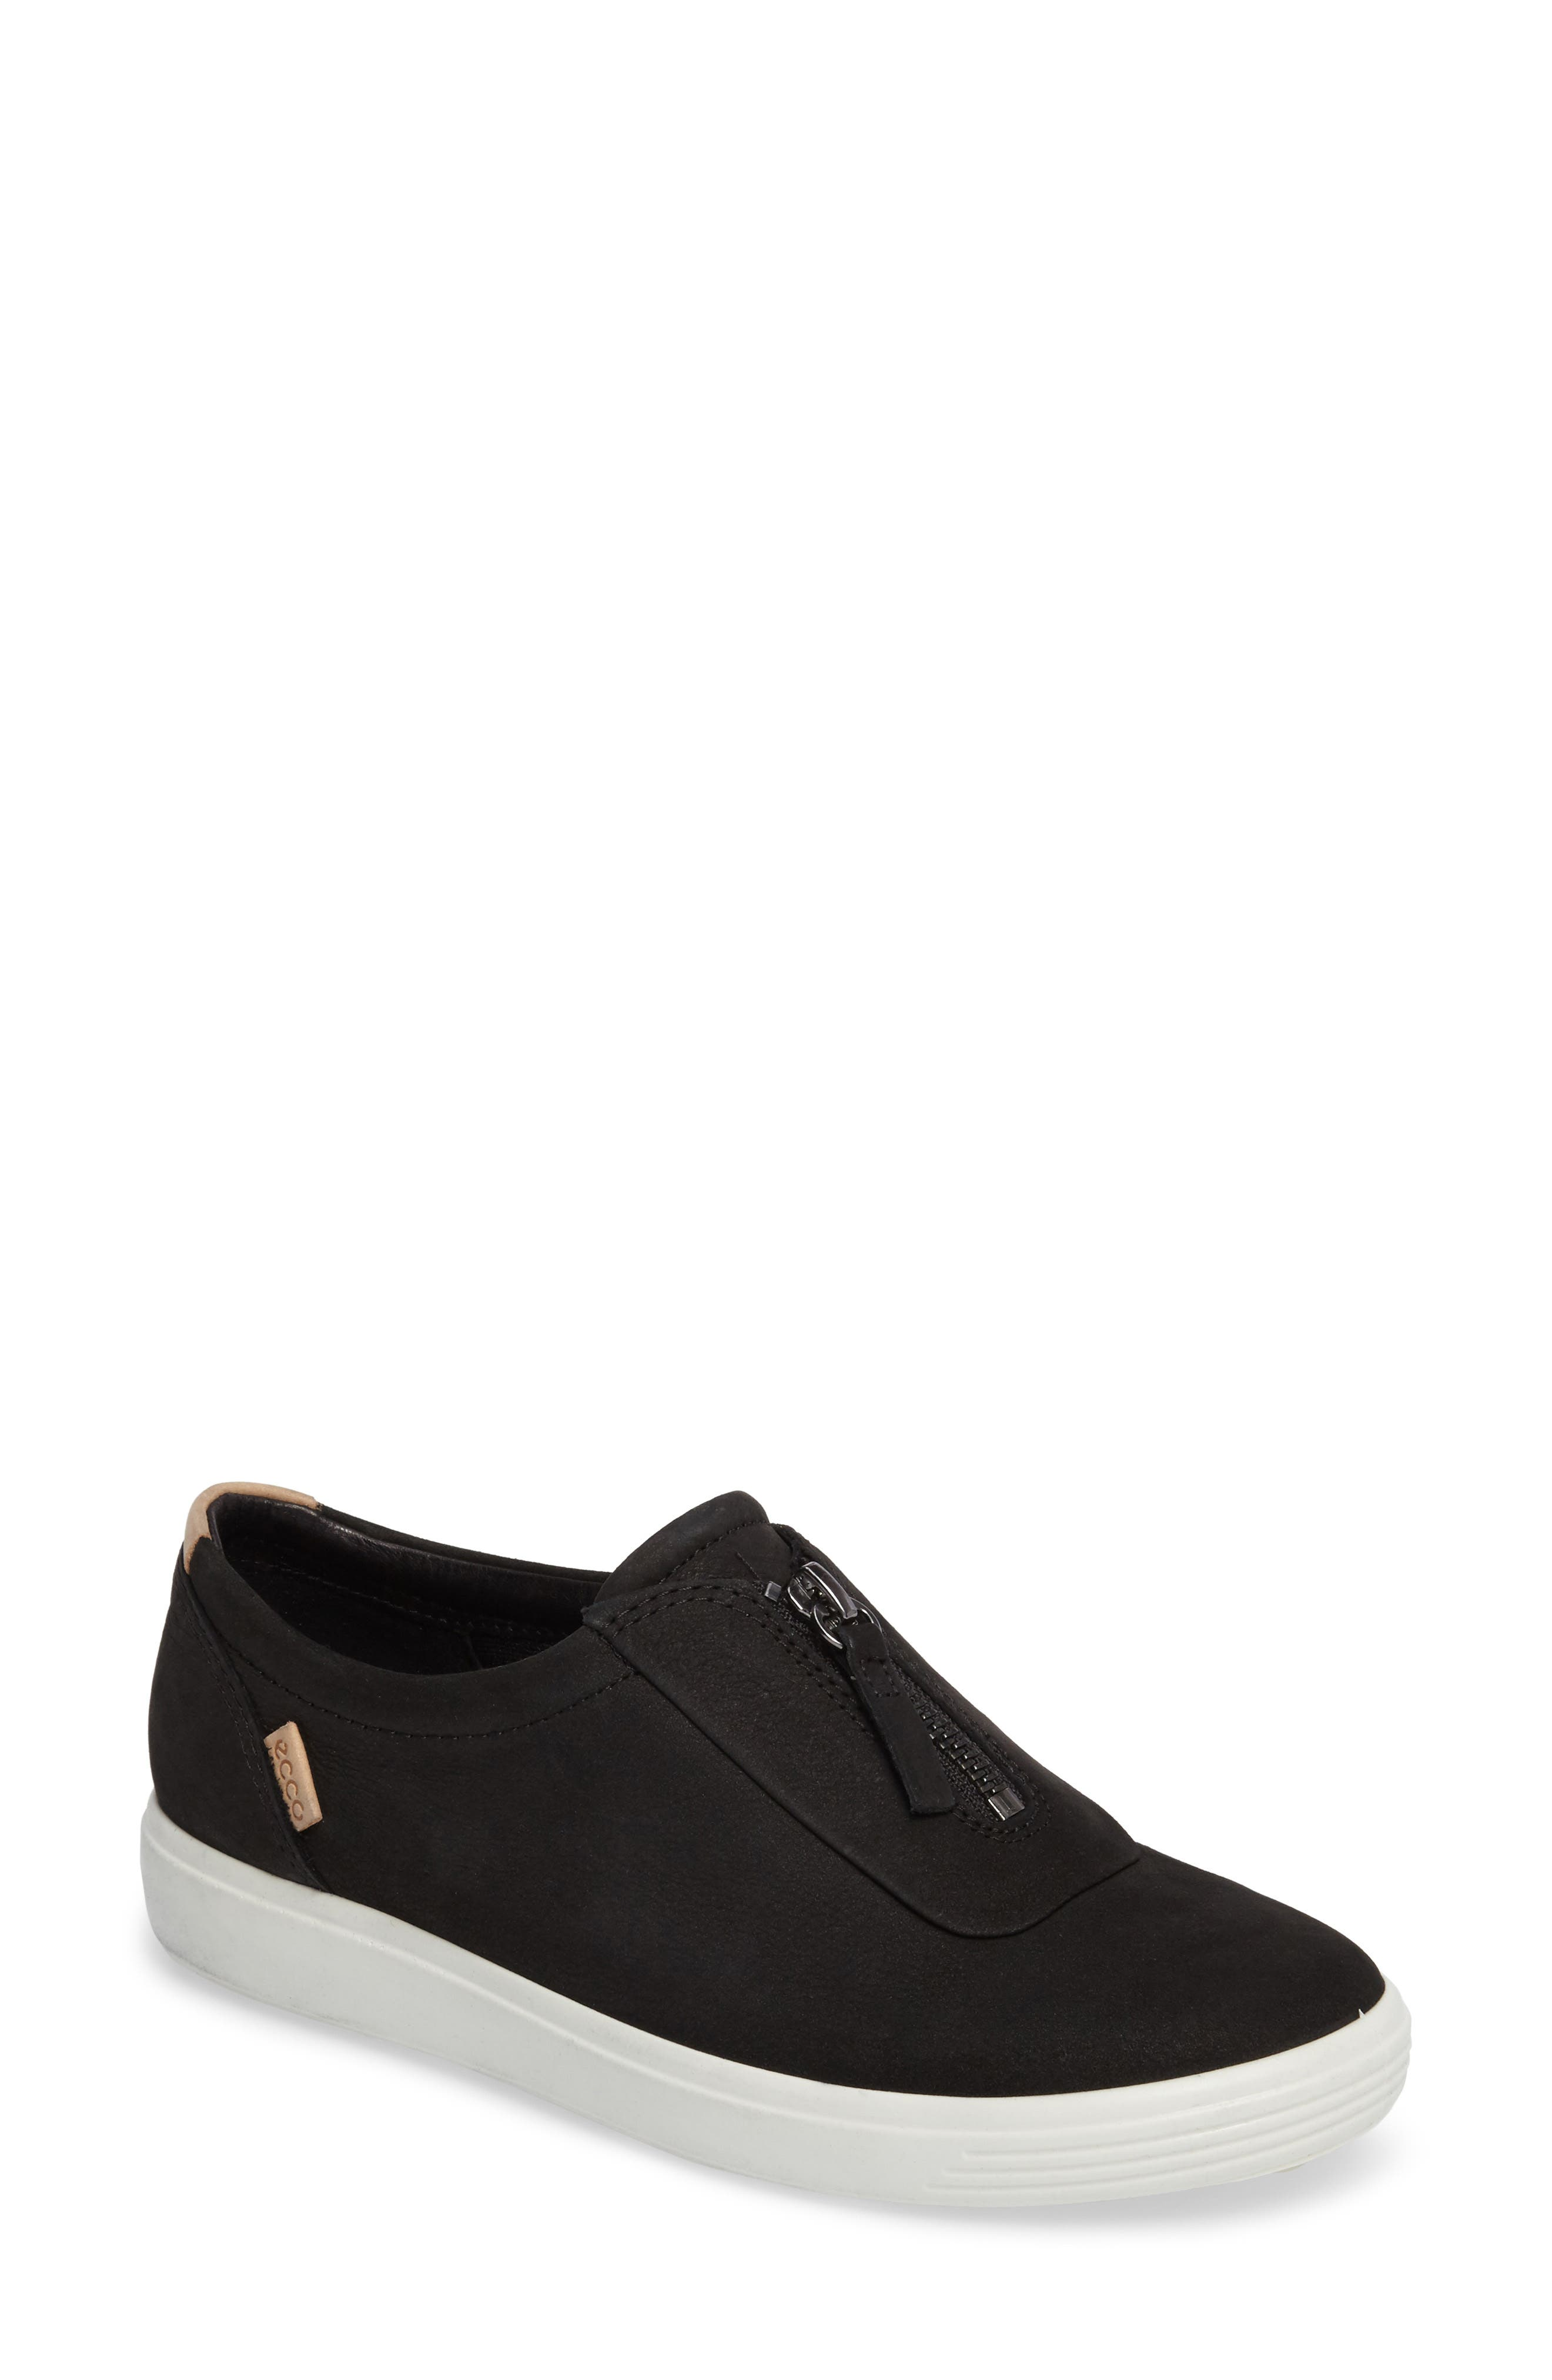 ECCO Soft 7 Slip-On Sneaker (Women)